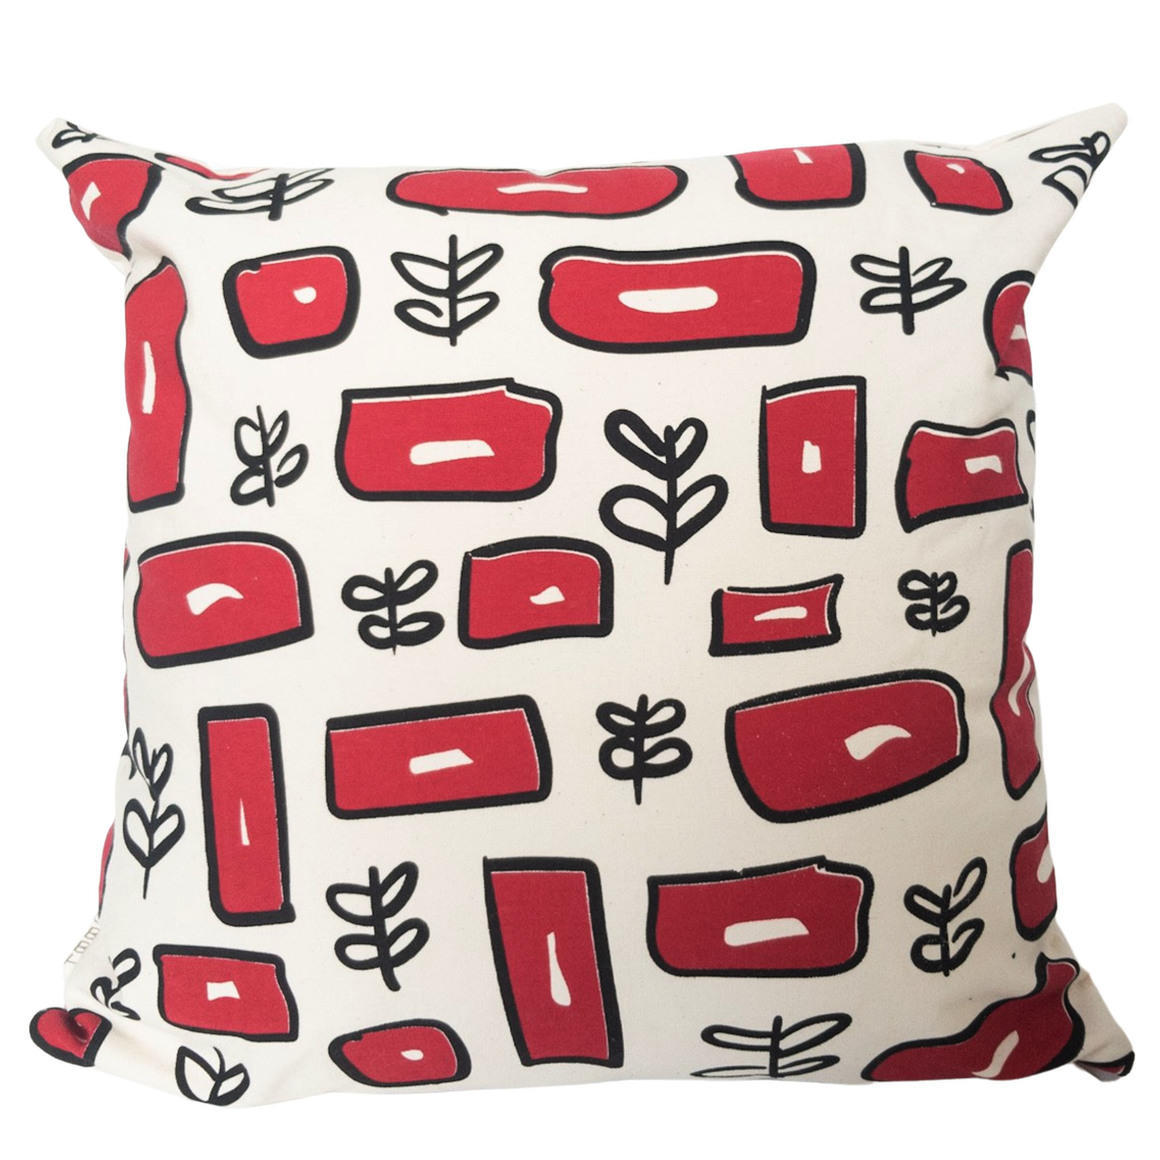 Vintage Inspired Hand Screen Printed 100% cotton square pattern cushion cover-2 Colourways-Cover and Insert | Trada Marketplace